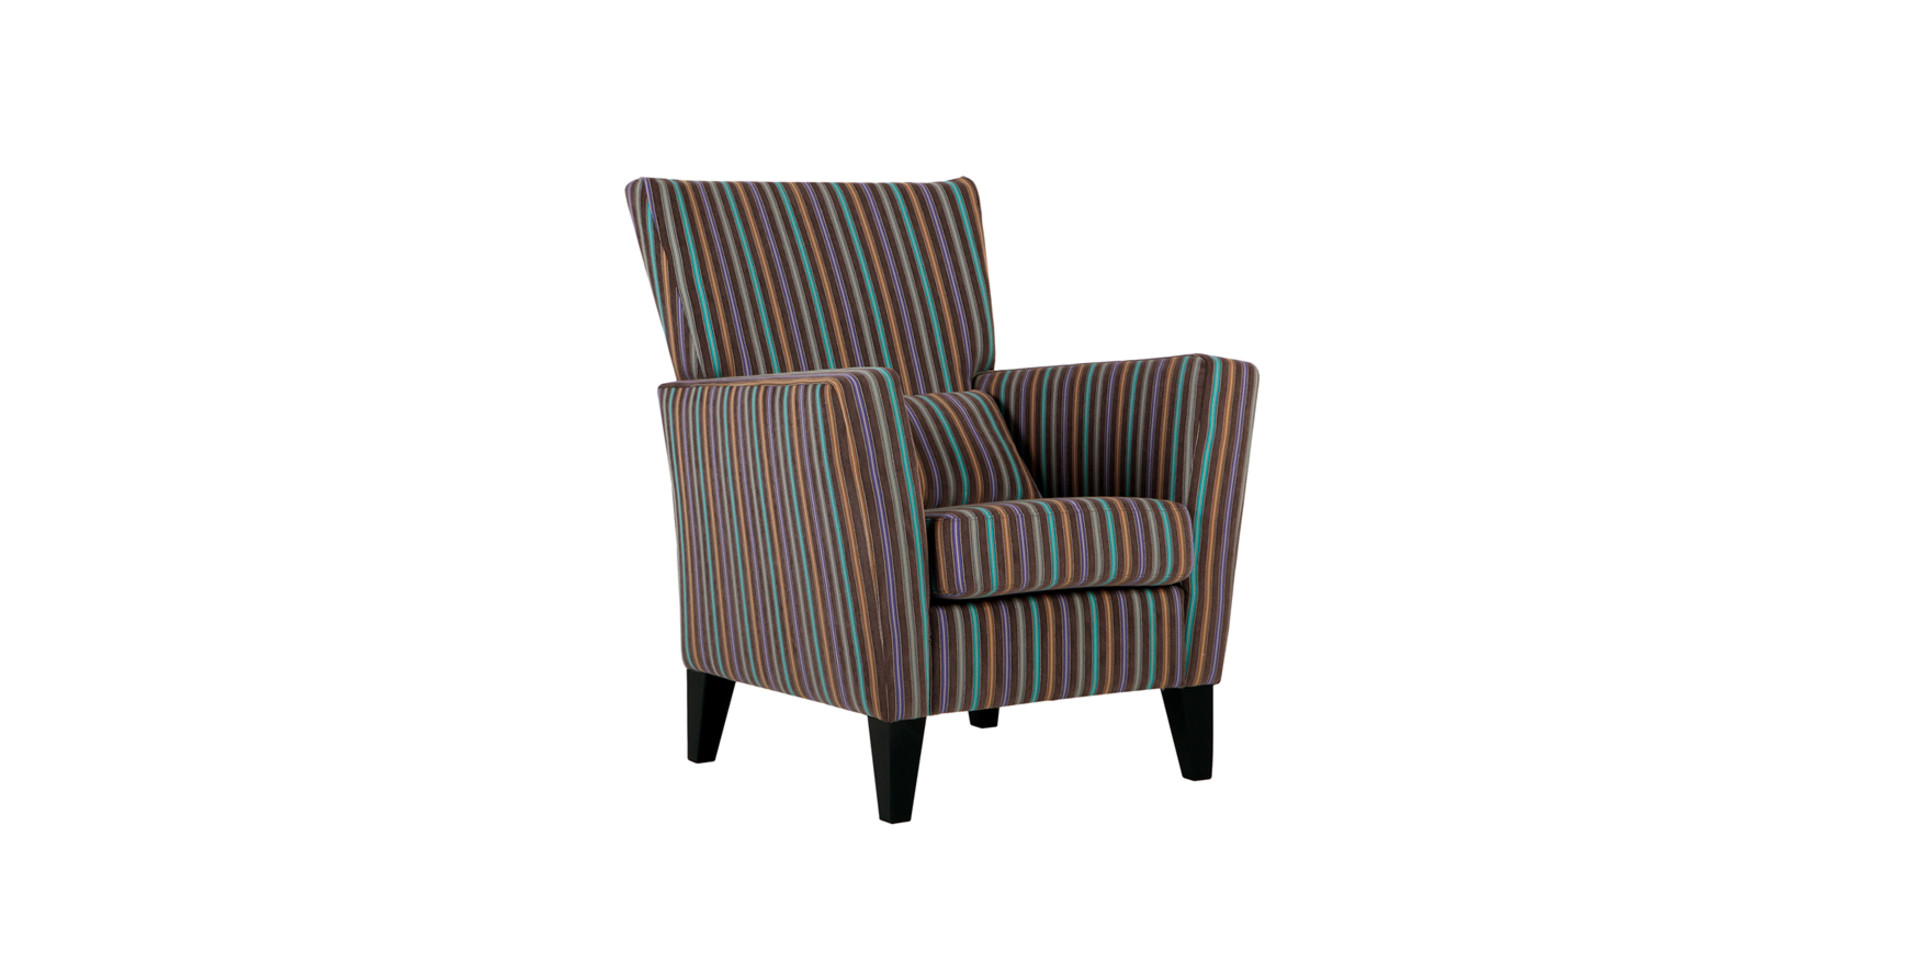 sits-denver-fauteuil-armchair_ponza2_grey_blue_2